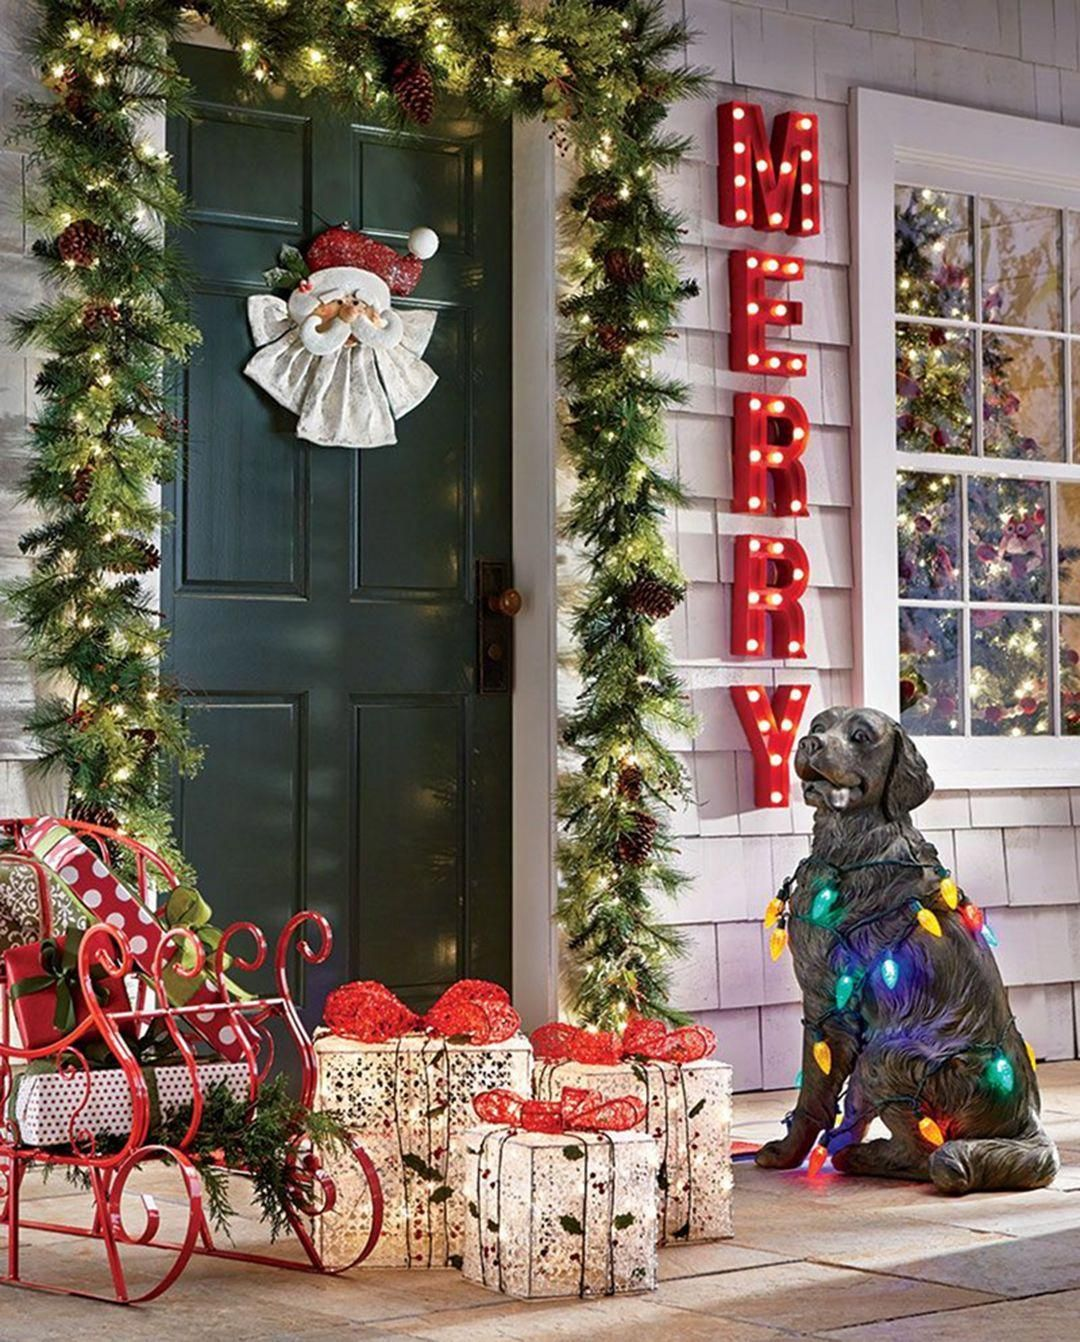 Small Living Room Ideas On A Budget Cheap Tips To Decorate Home Fur Outside Christmas Decorations Christmas Door Decorations Diy Christmas Decorations Easy